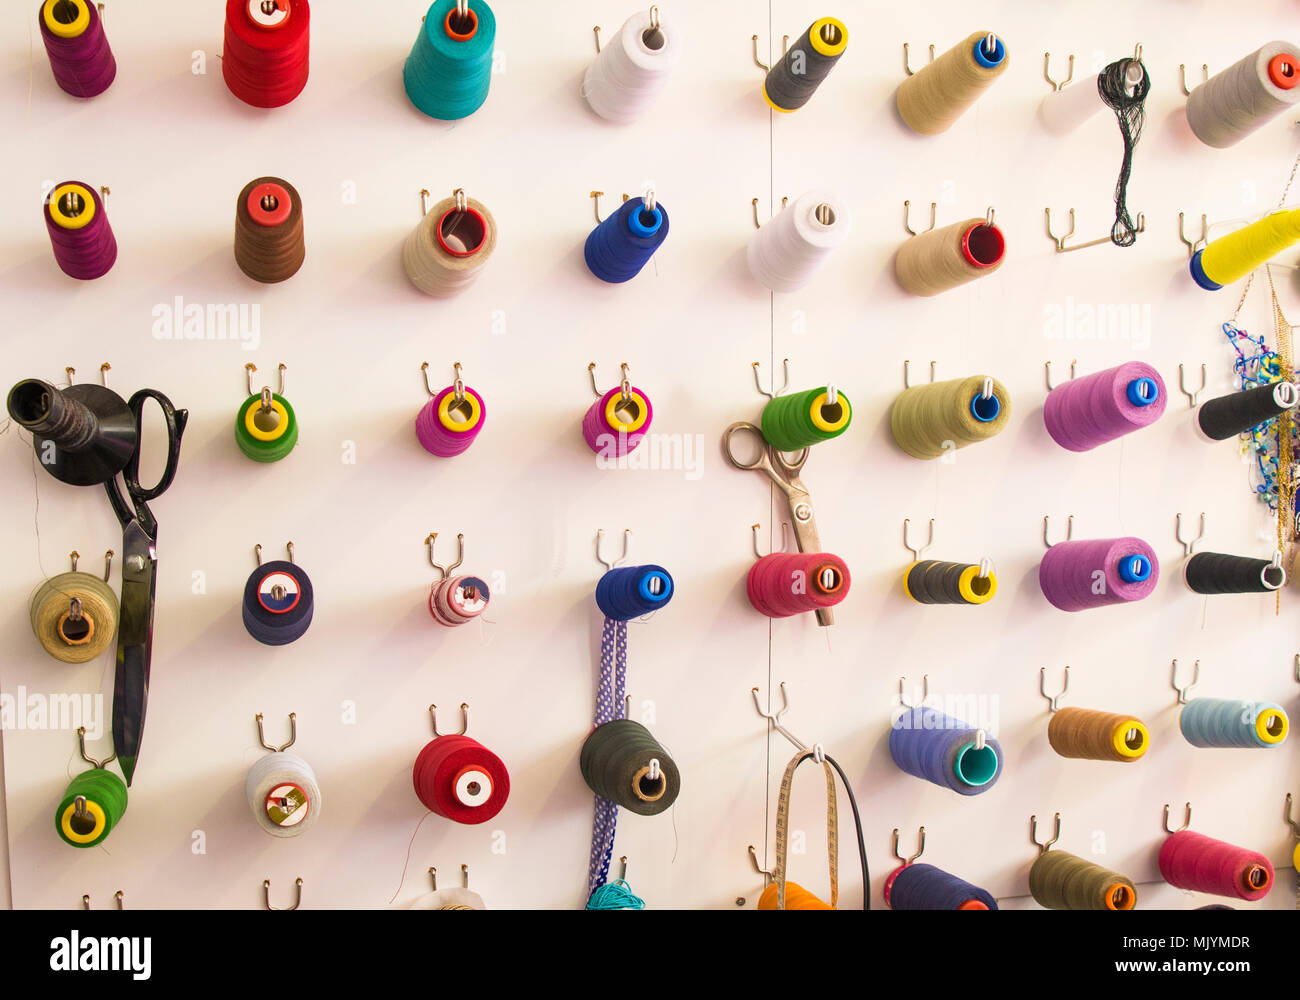 Multicolored coils and scissors on the wall. Workplace seamstresses - Stock Image